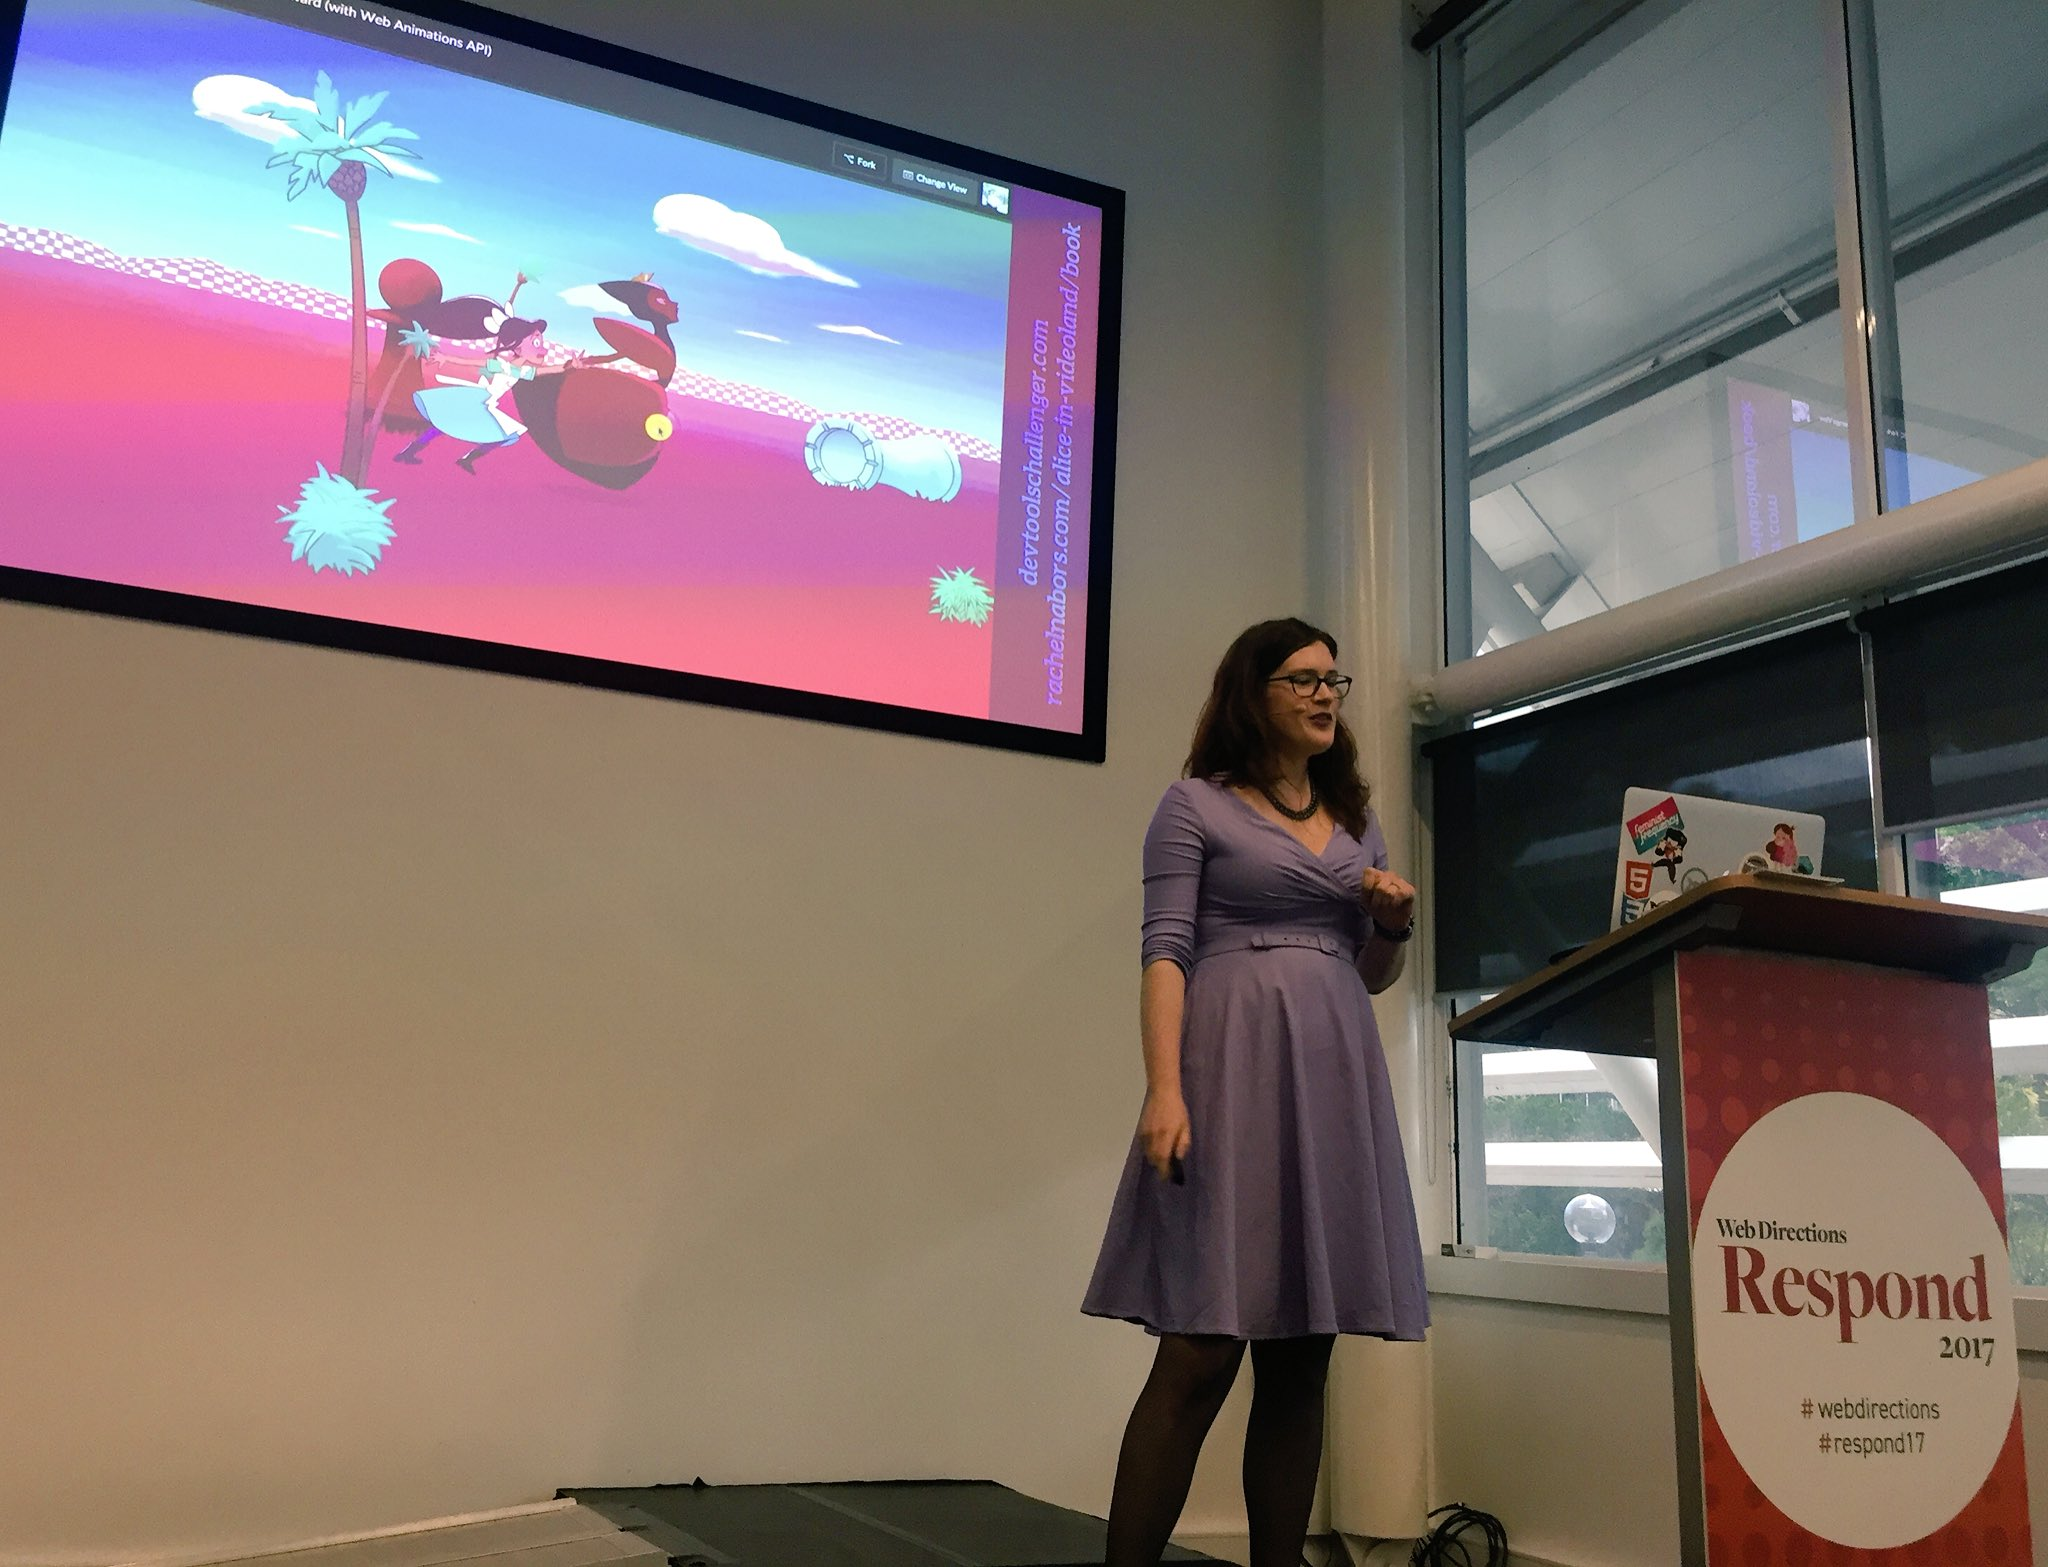 Yay finally get to see @rachelnabors present about animations on the web at @webdirections #respond17 https://t.co/U0GvUDogJk